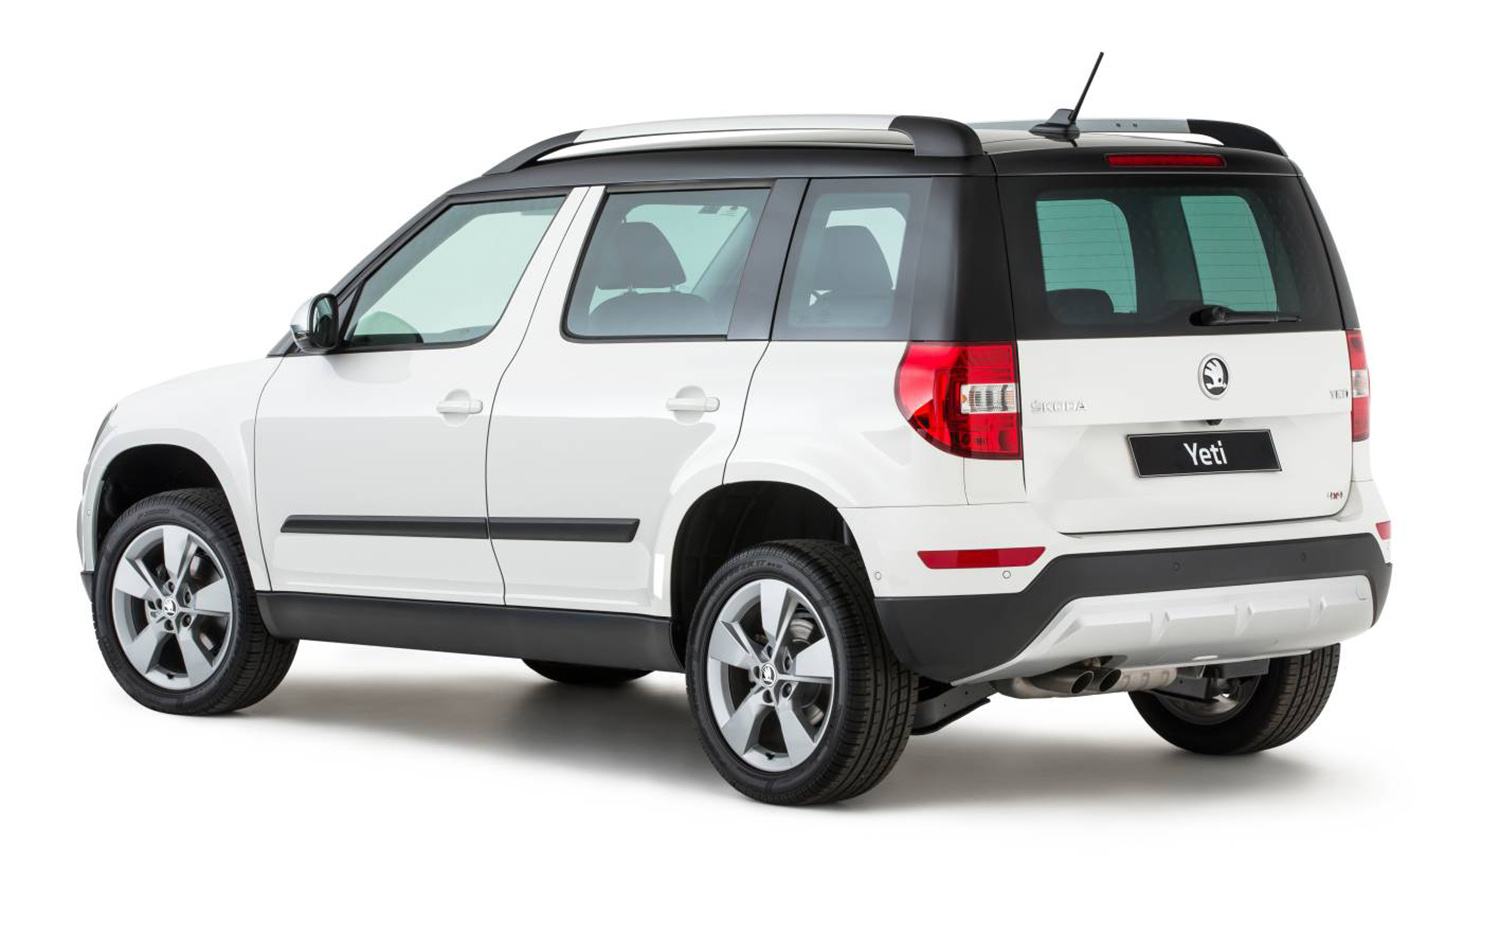 2017 Skoda Yeti pricing and specs: 110TSI 4x4 Outdoor from ...